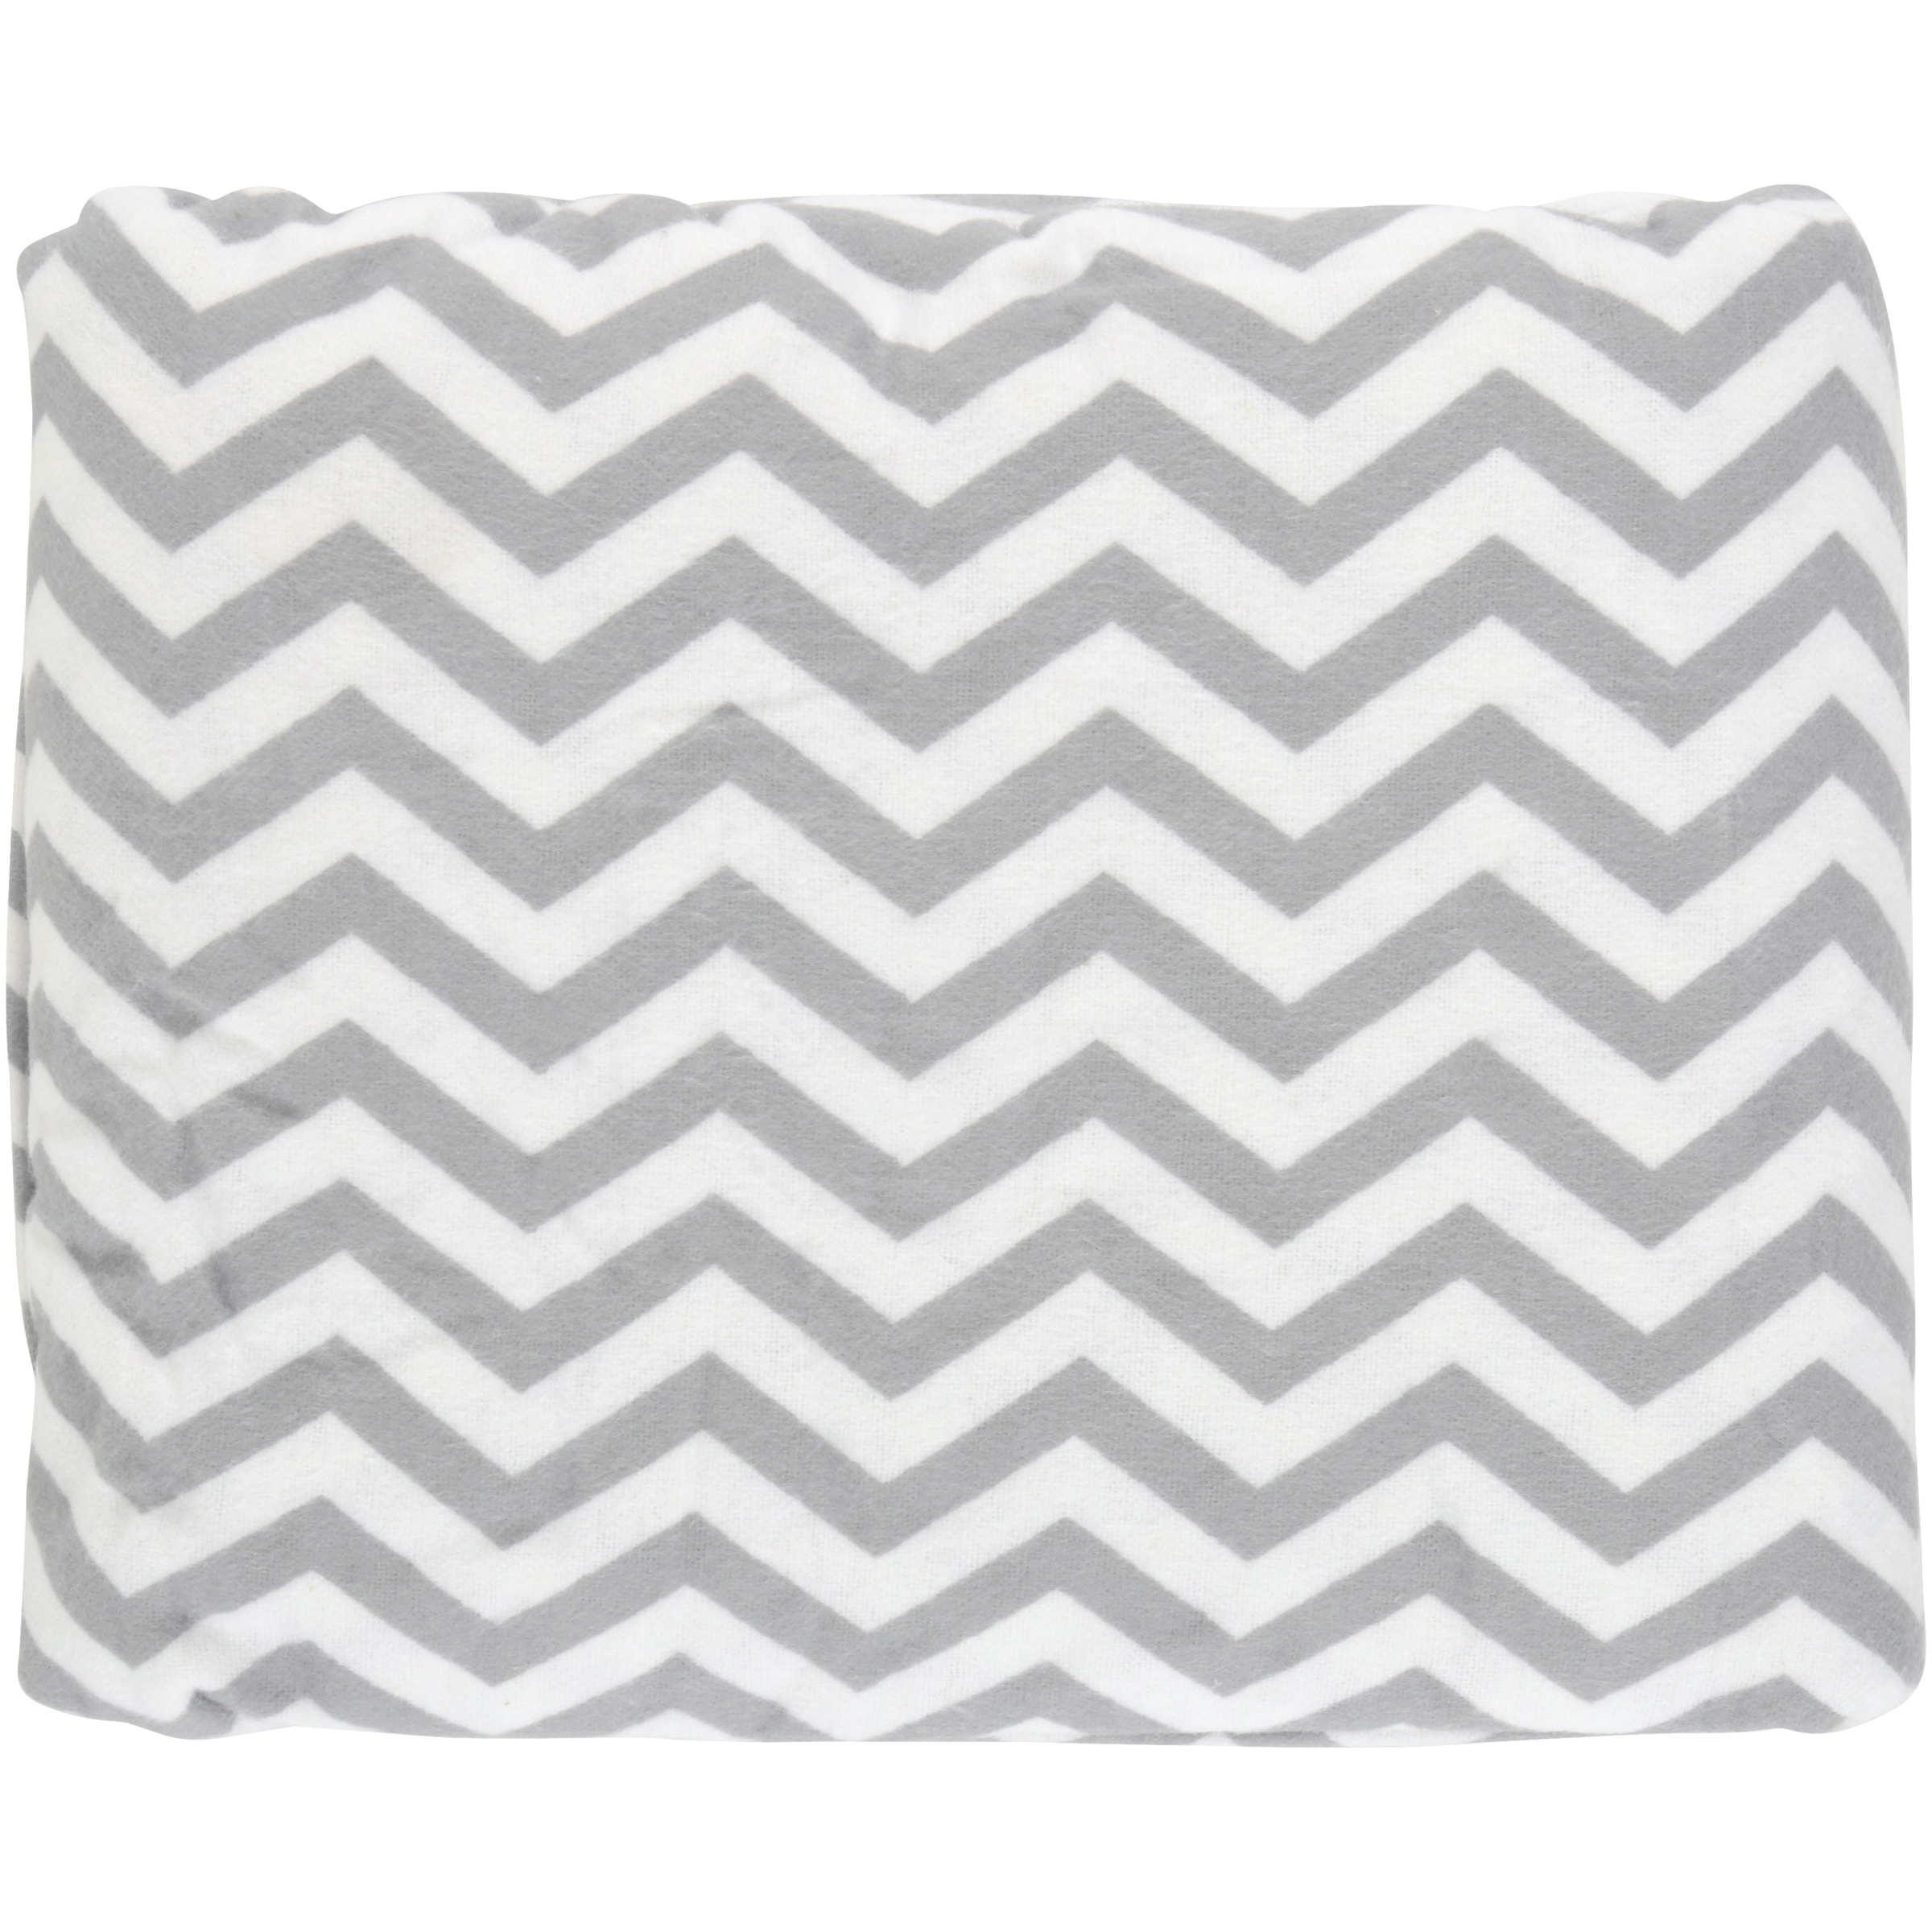 TL Care 100 Percent Cotton Flannel Fitted Crib Sheet for Standard Crib and Toddler Mattresses, Gray Zigzag